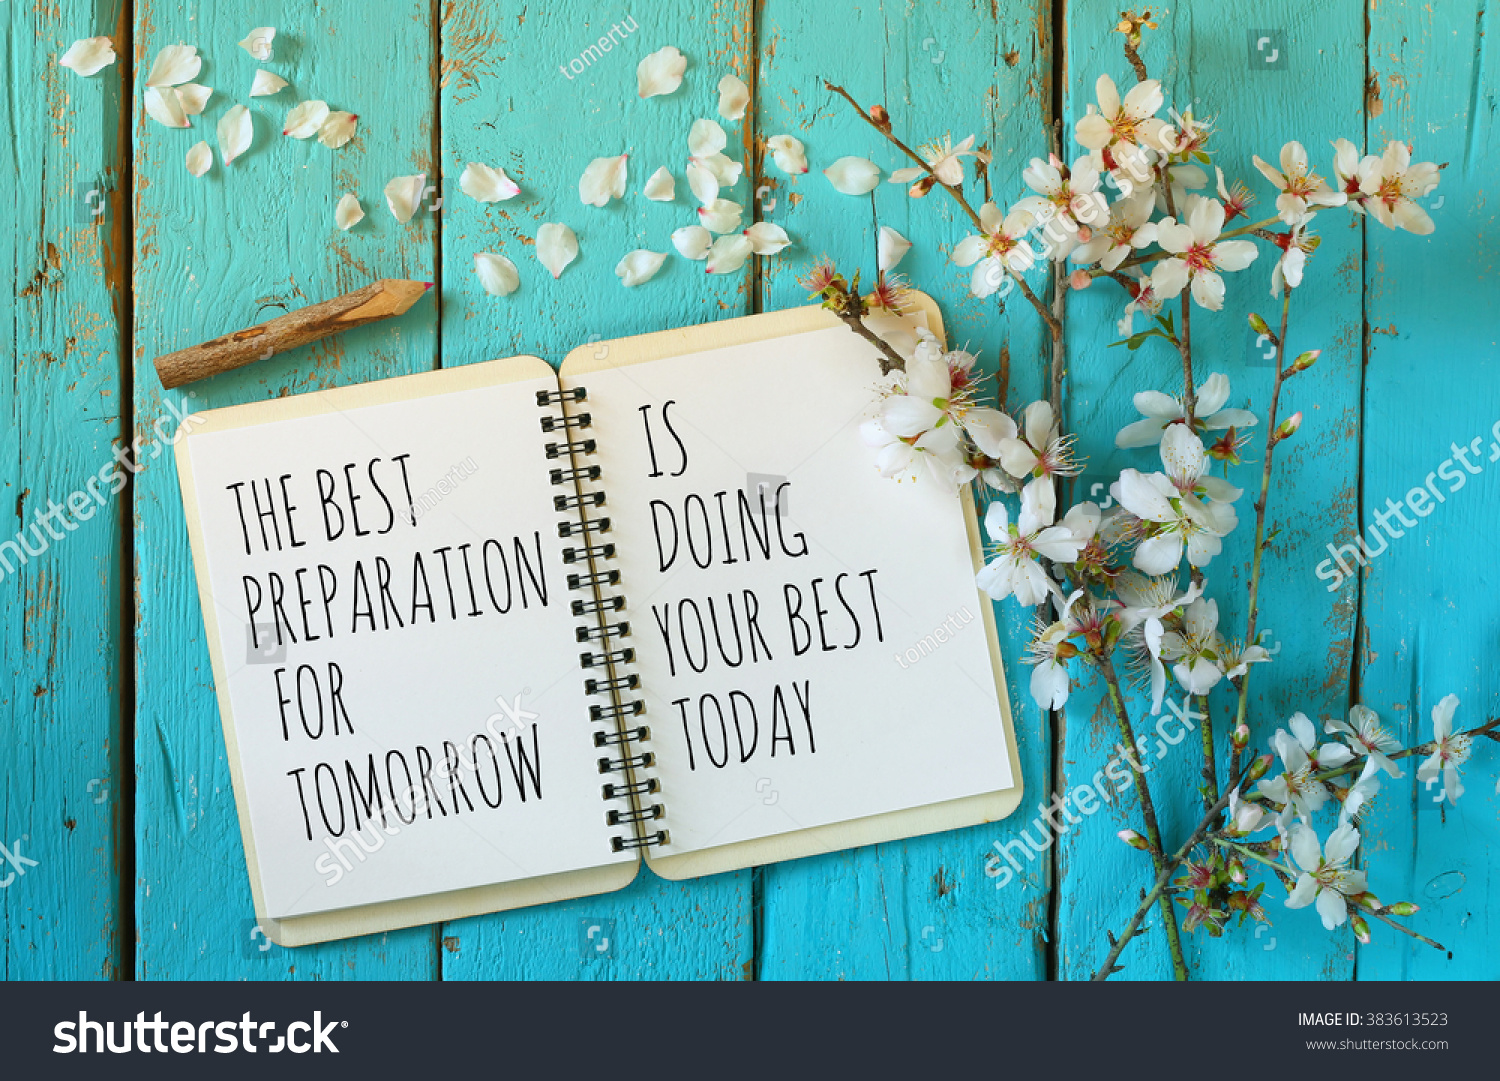 The Best Preparation For Tomorrow Is Doing Your Best Today: Open Notebook Over Wooden Table With Motivational Saying